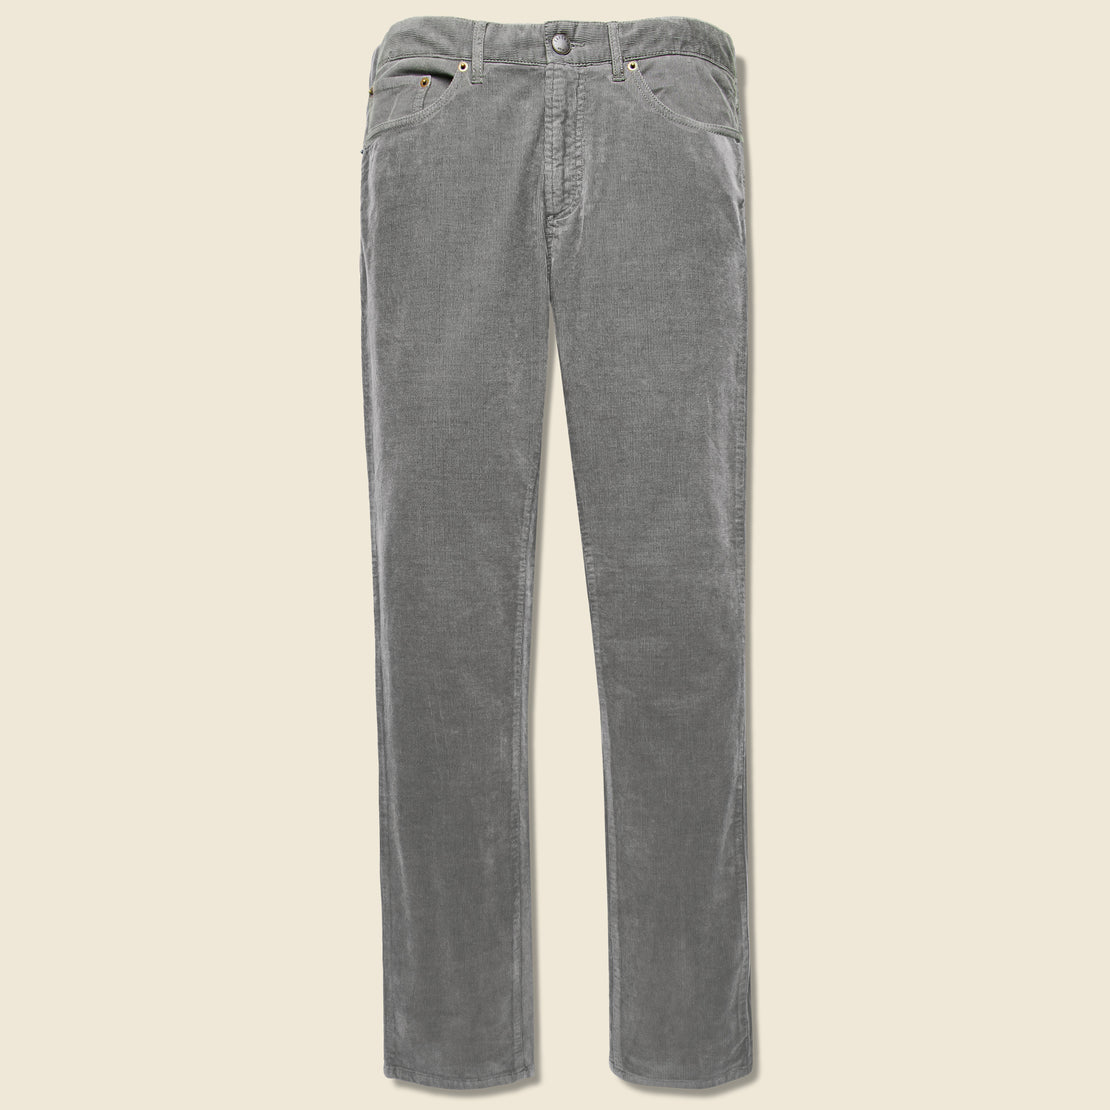 Faherty Stretch Corduroy Pant - Rugged Grey